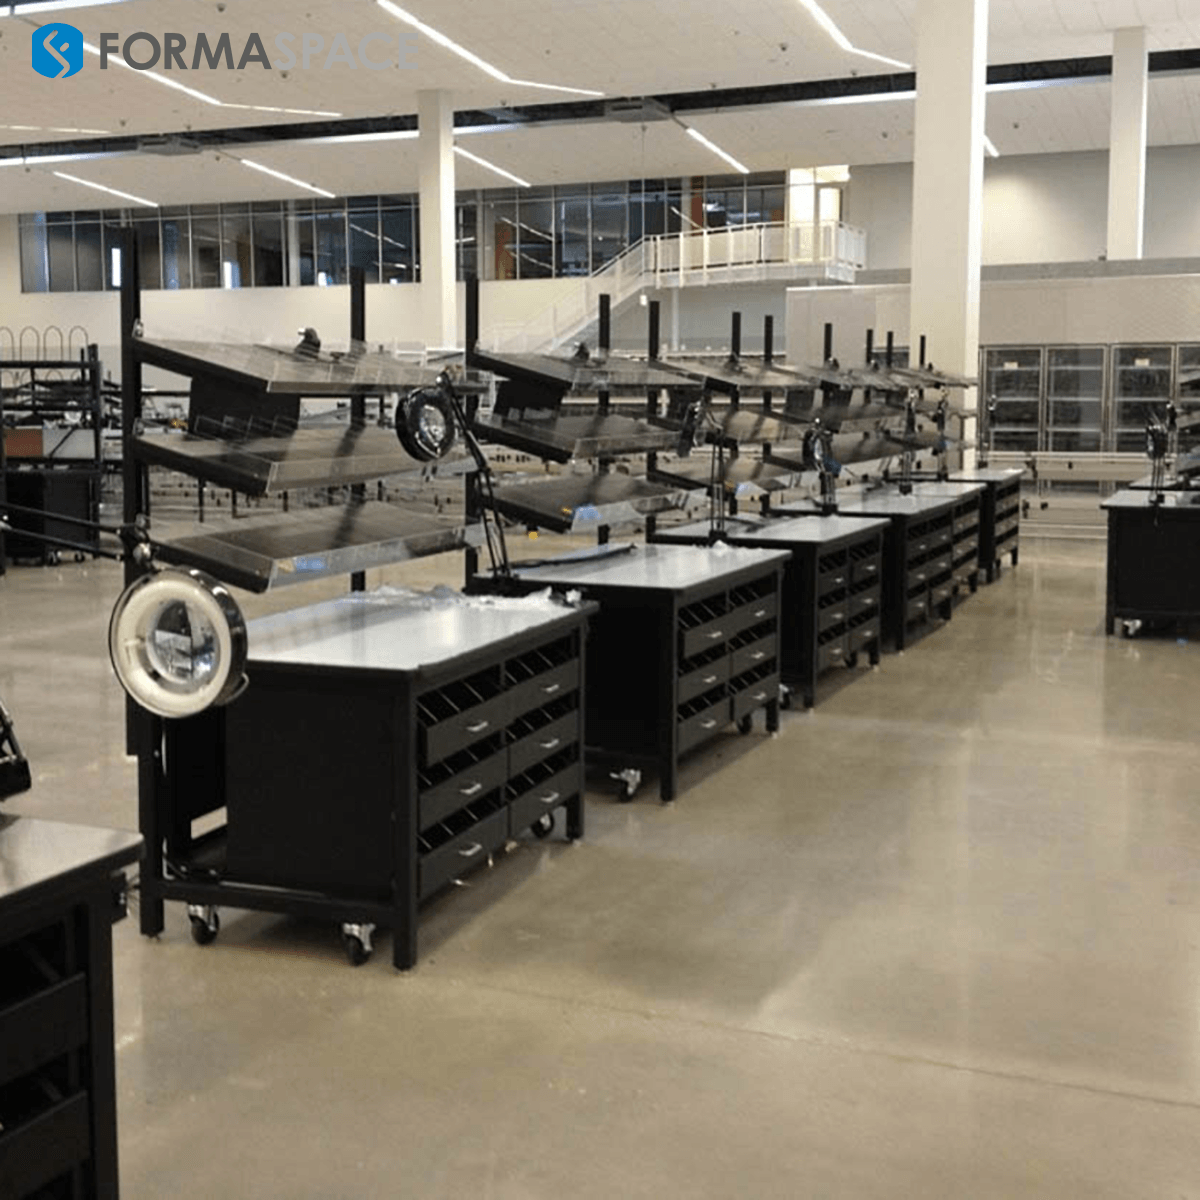 Height Adjustable Distribution Center Workbenches for Multi-Shift Operation